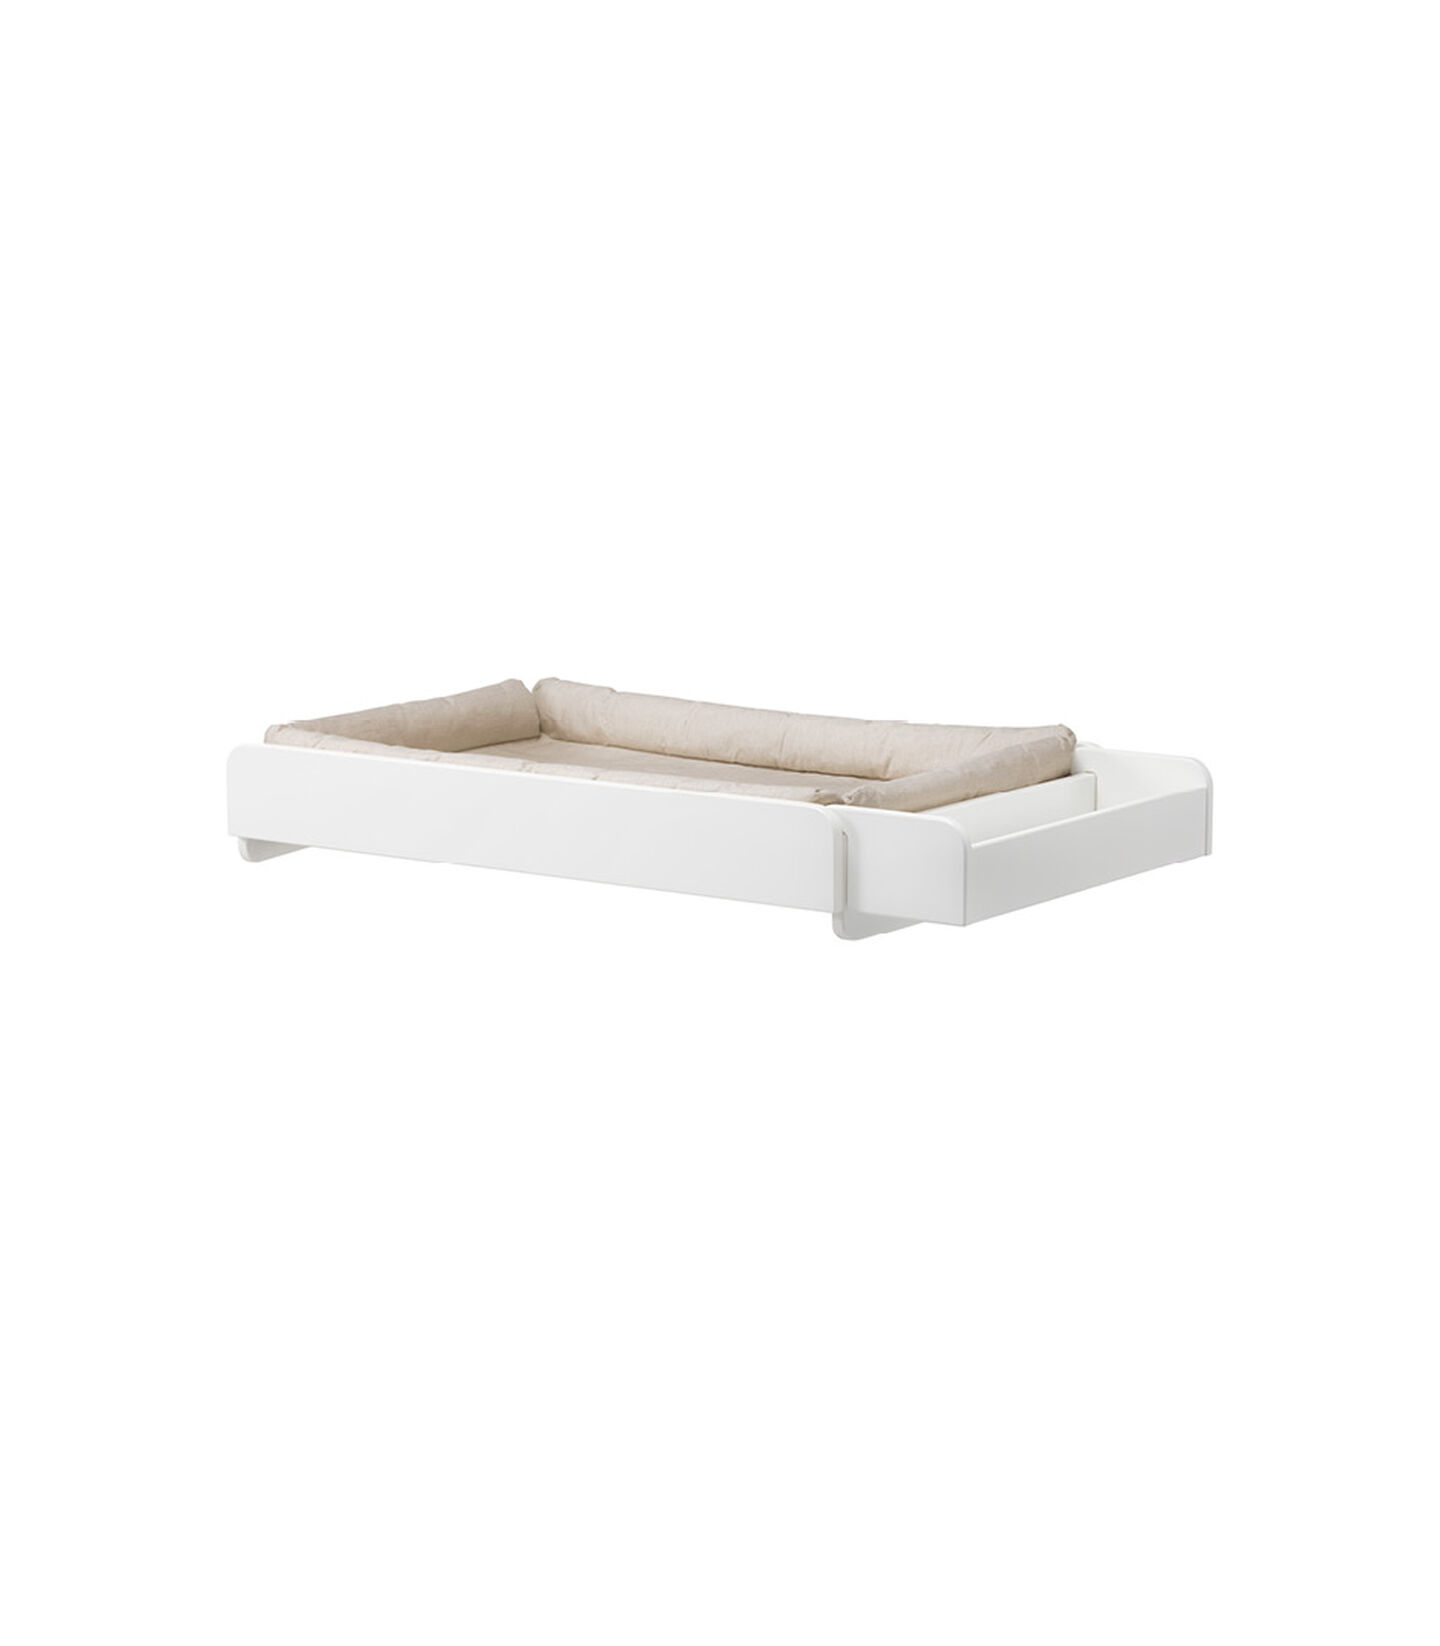 Stokke® Home™ Changer met matras white, White, mainview view 2